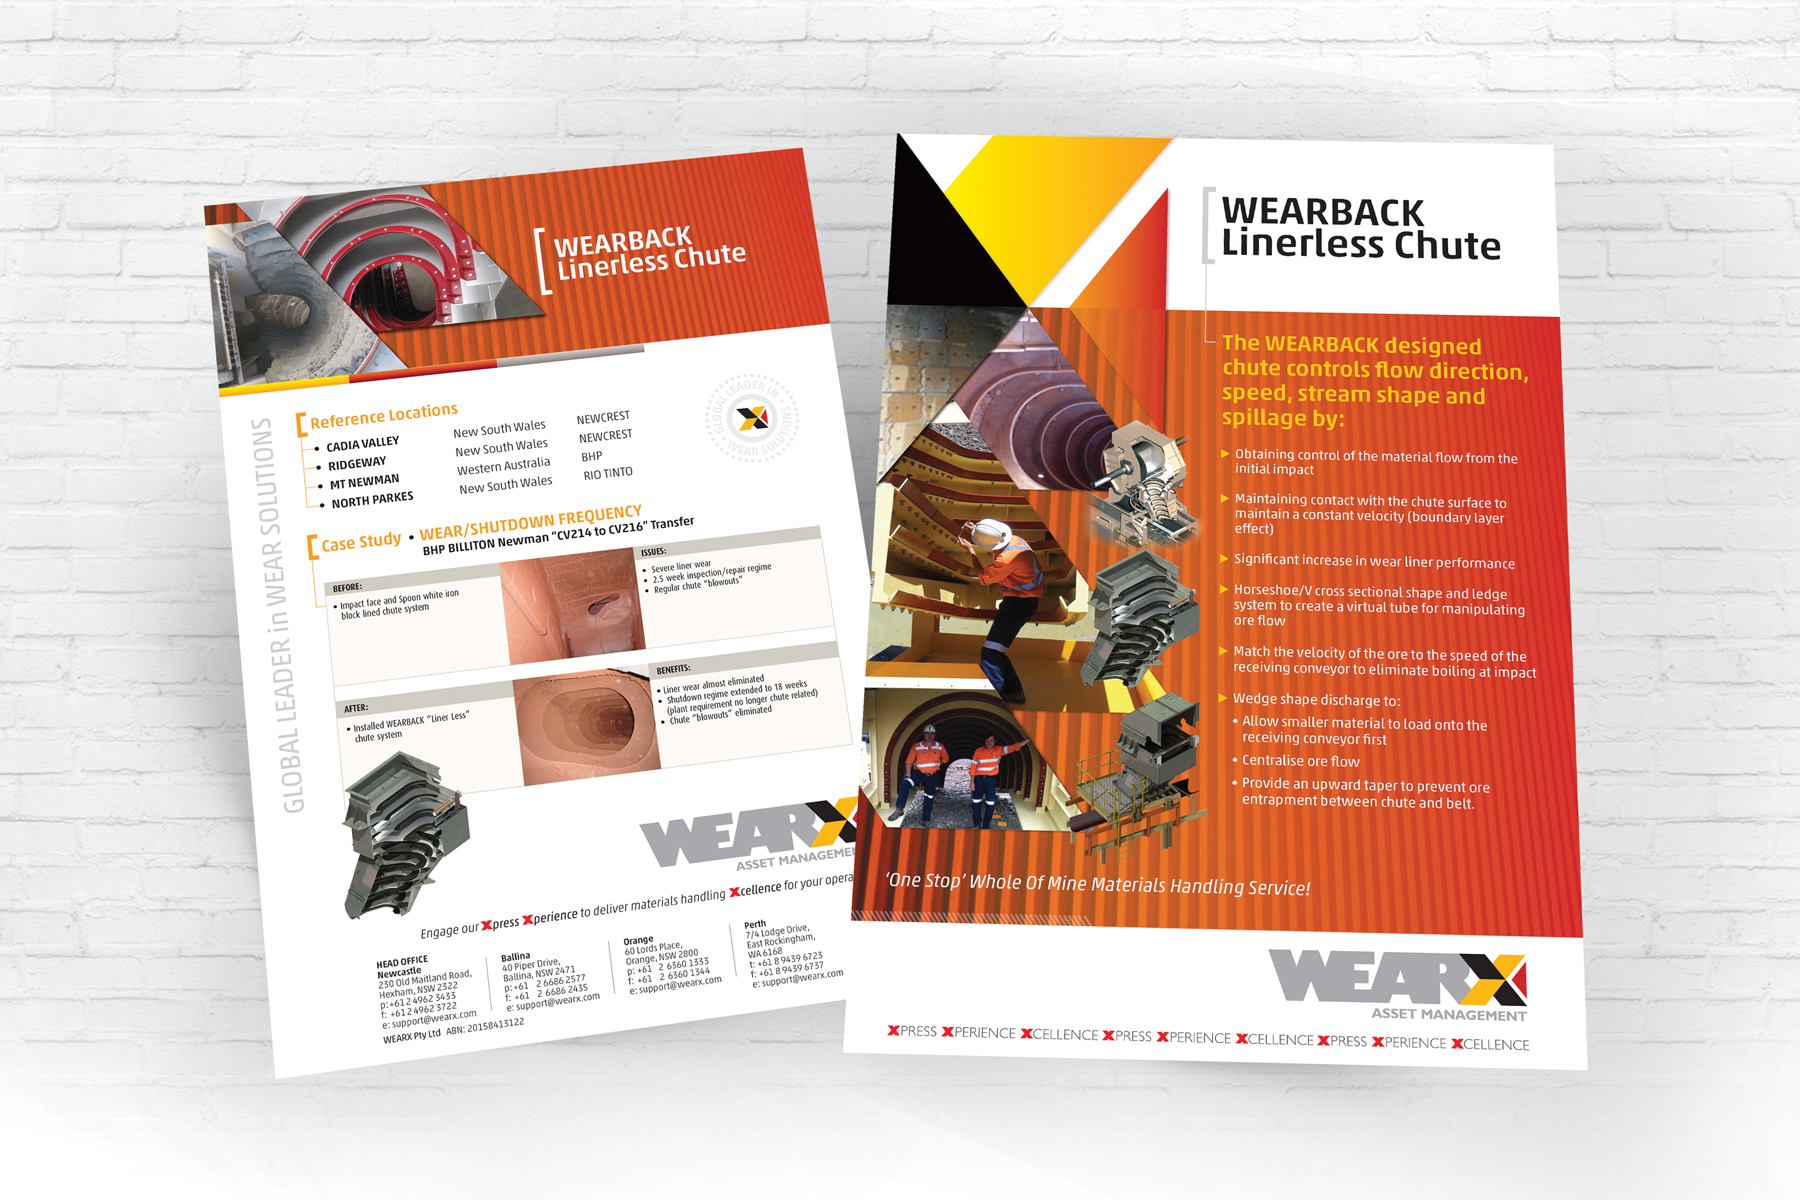 WEARX 2 Page A4 WEARBACK Linerless Chute Information Document